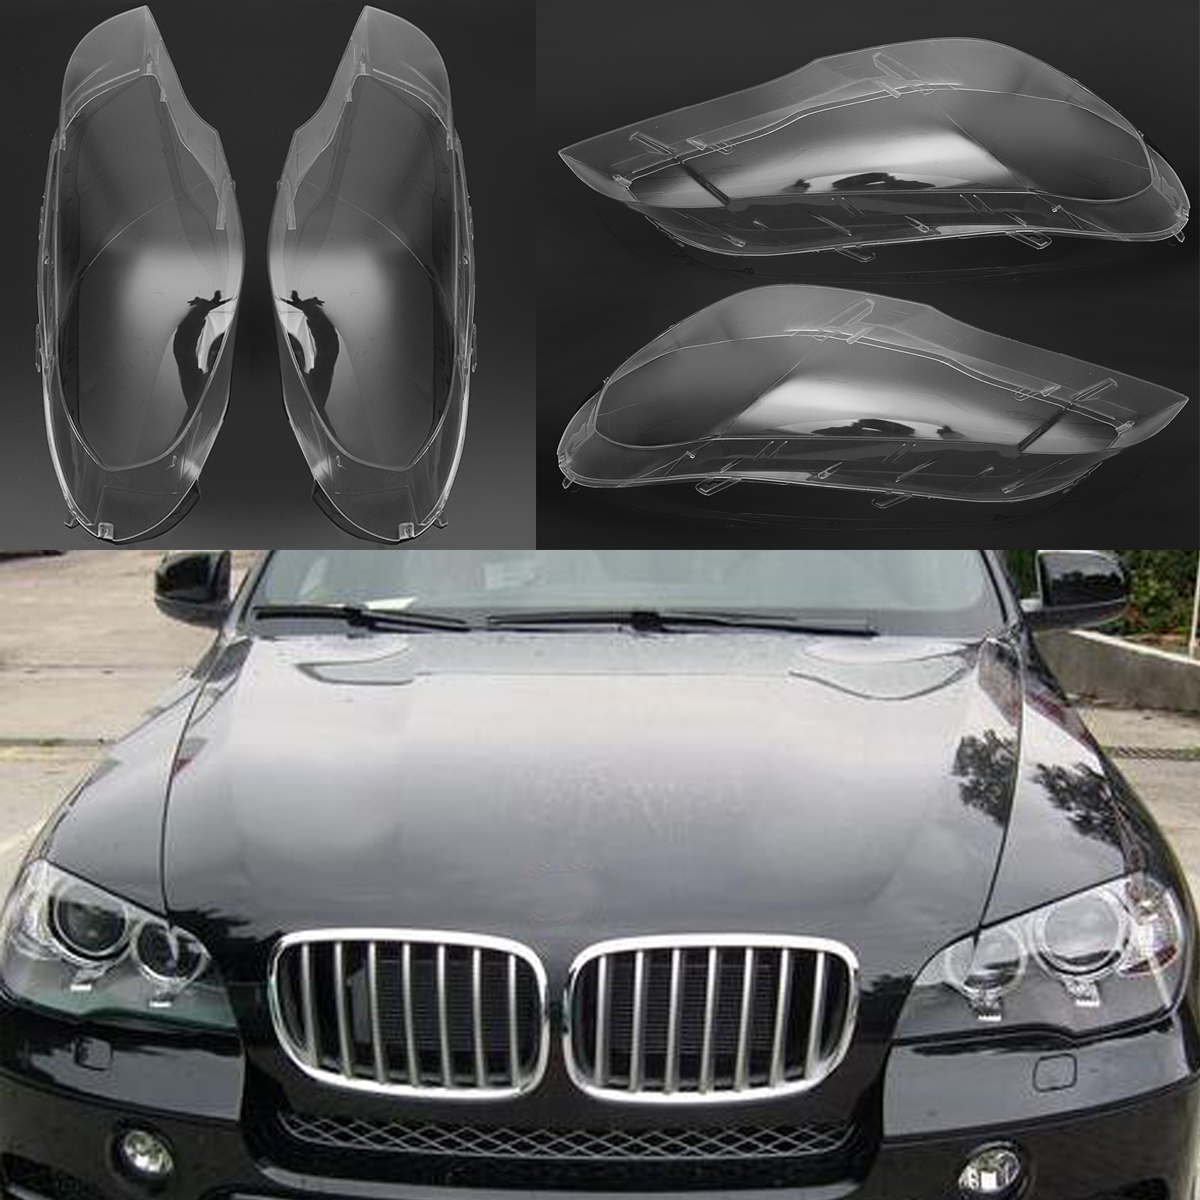 Left Headlight Clear Plastic Lens Shell Cover Lampshade For BMW 2007-2013 X5 E70